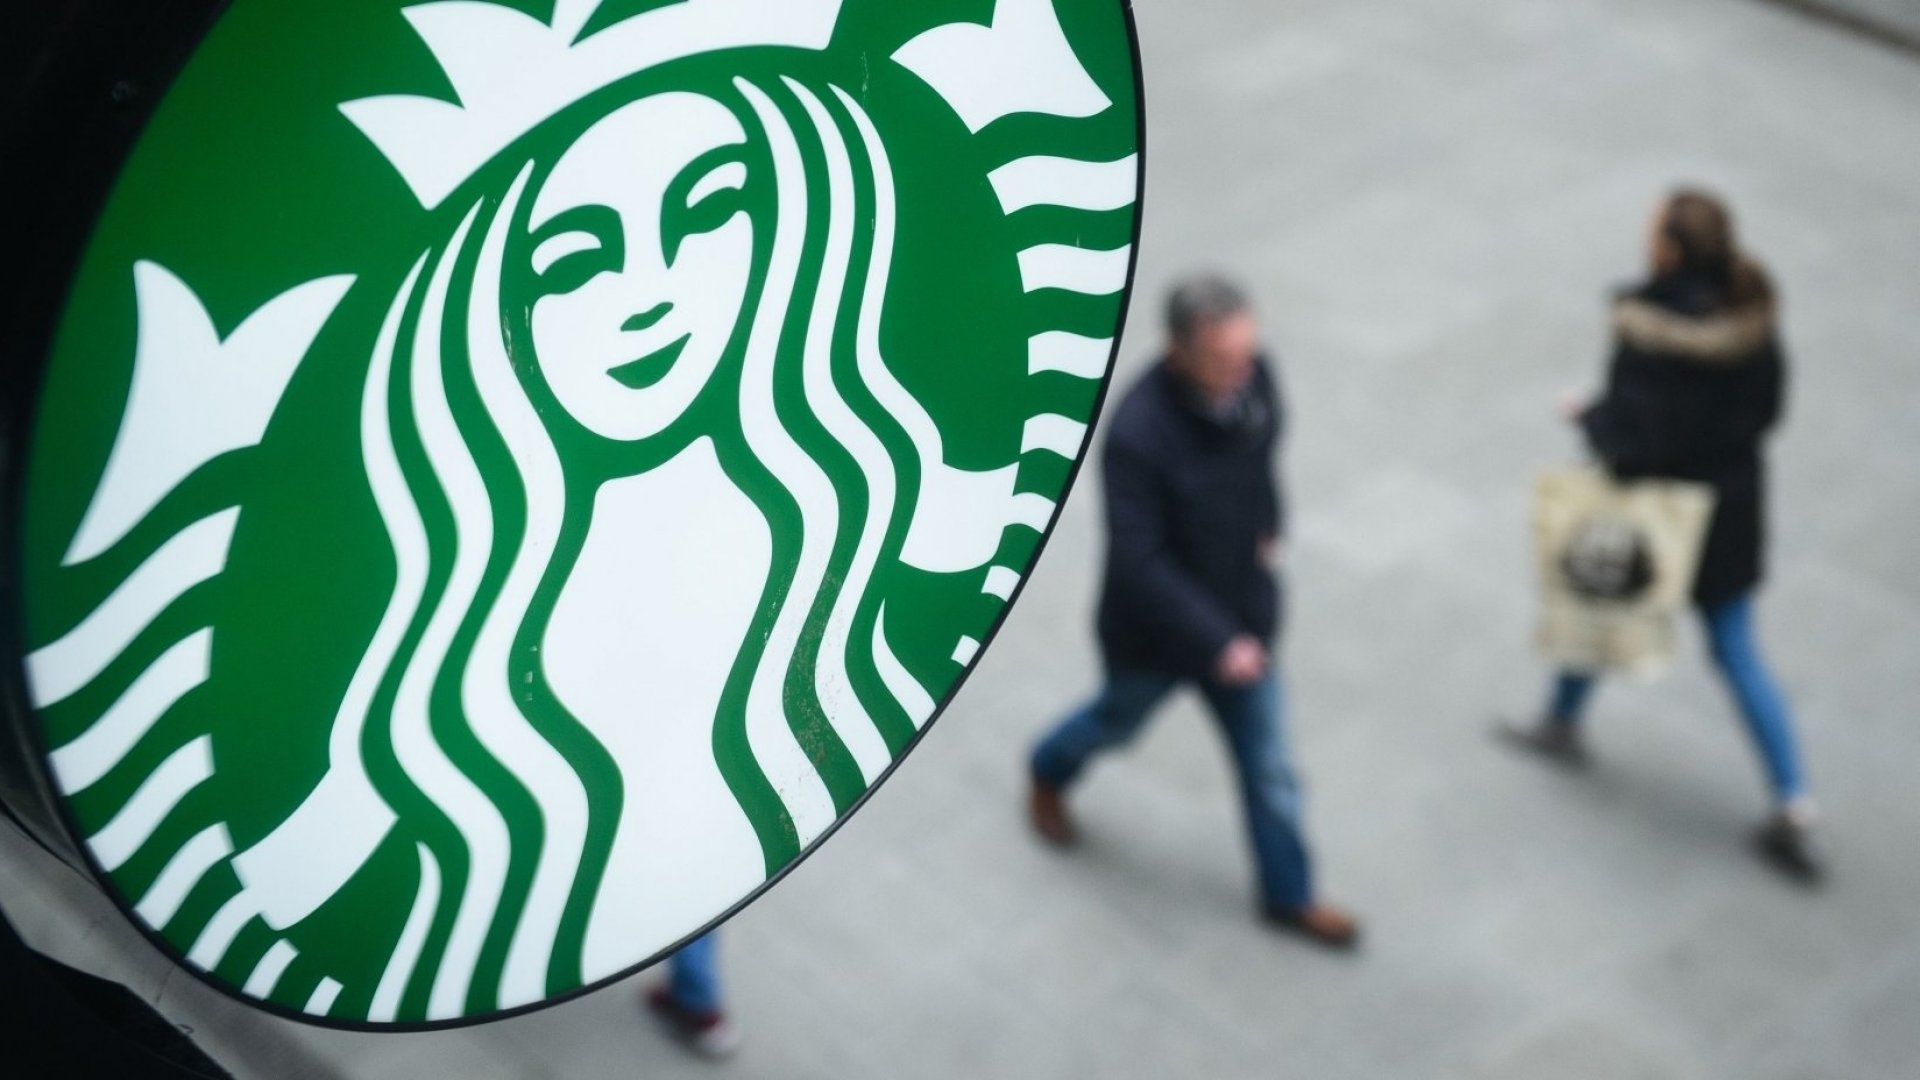 Starbucks Just Made a Stunning Decision That May Affect Coffee-Drinking At Work